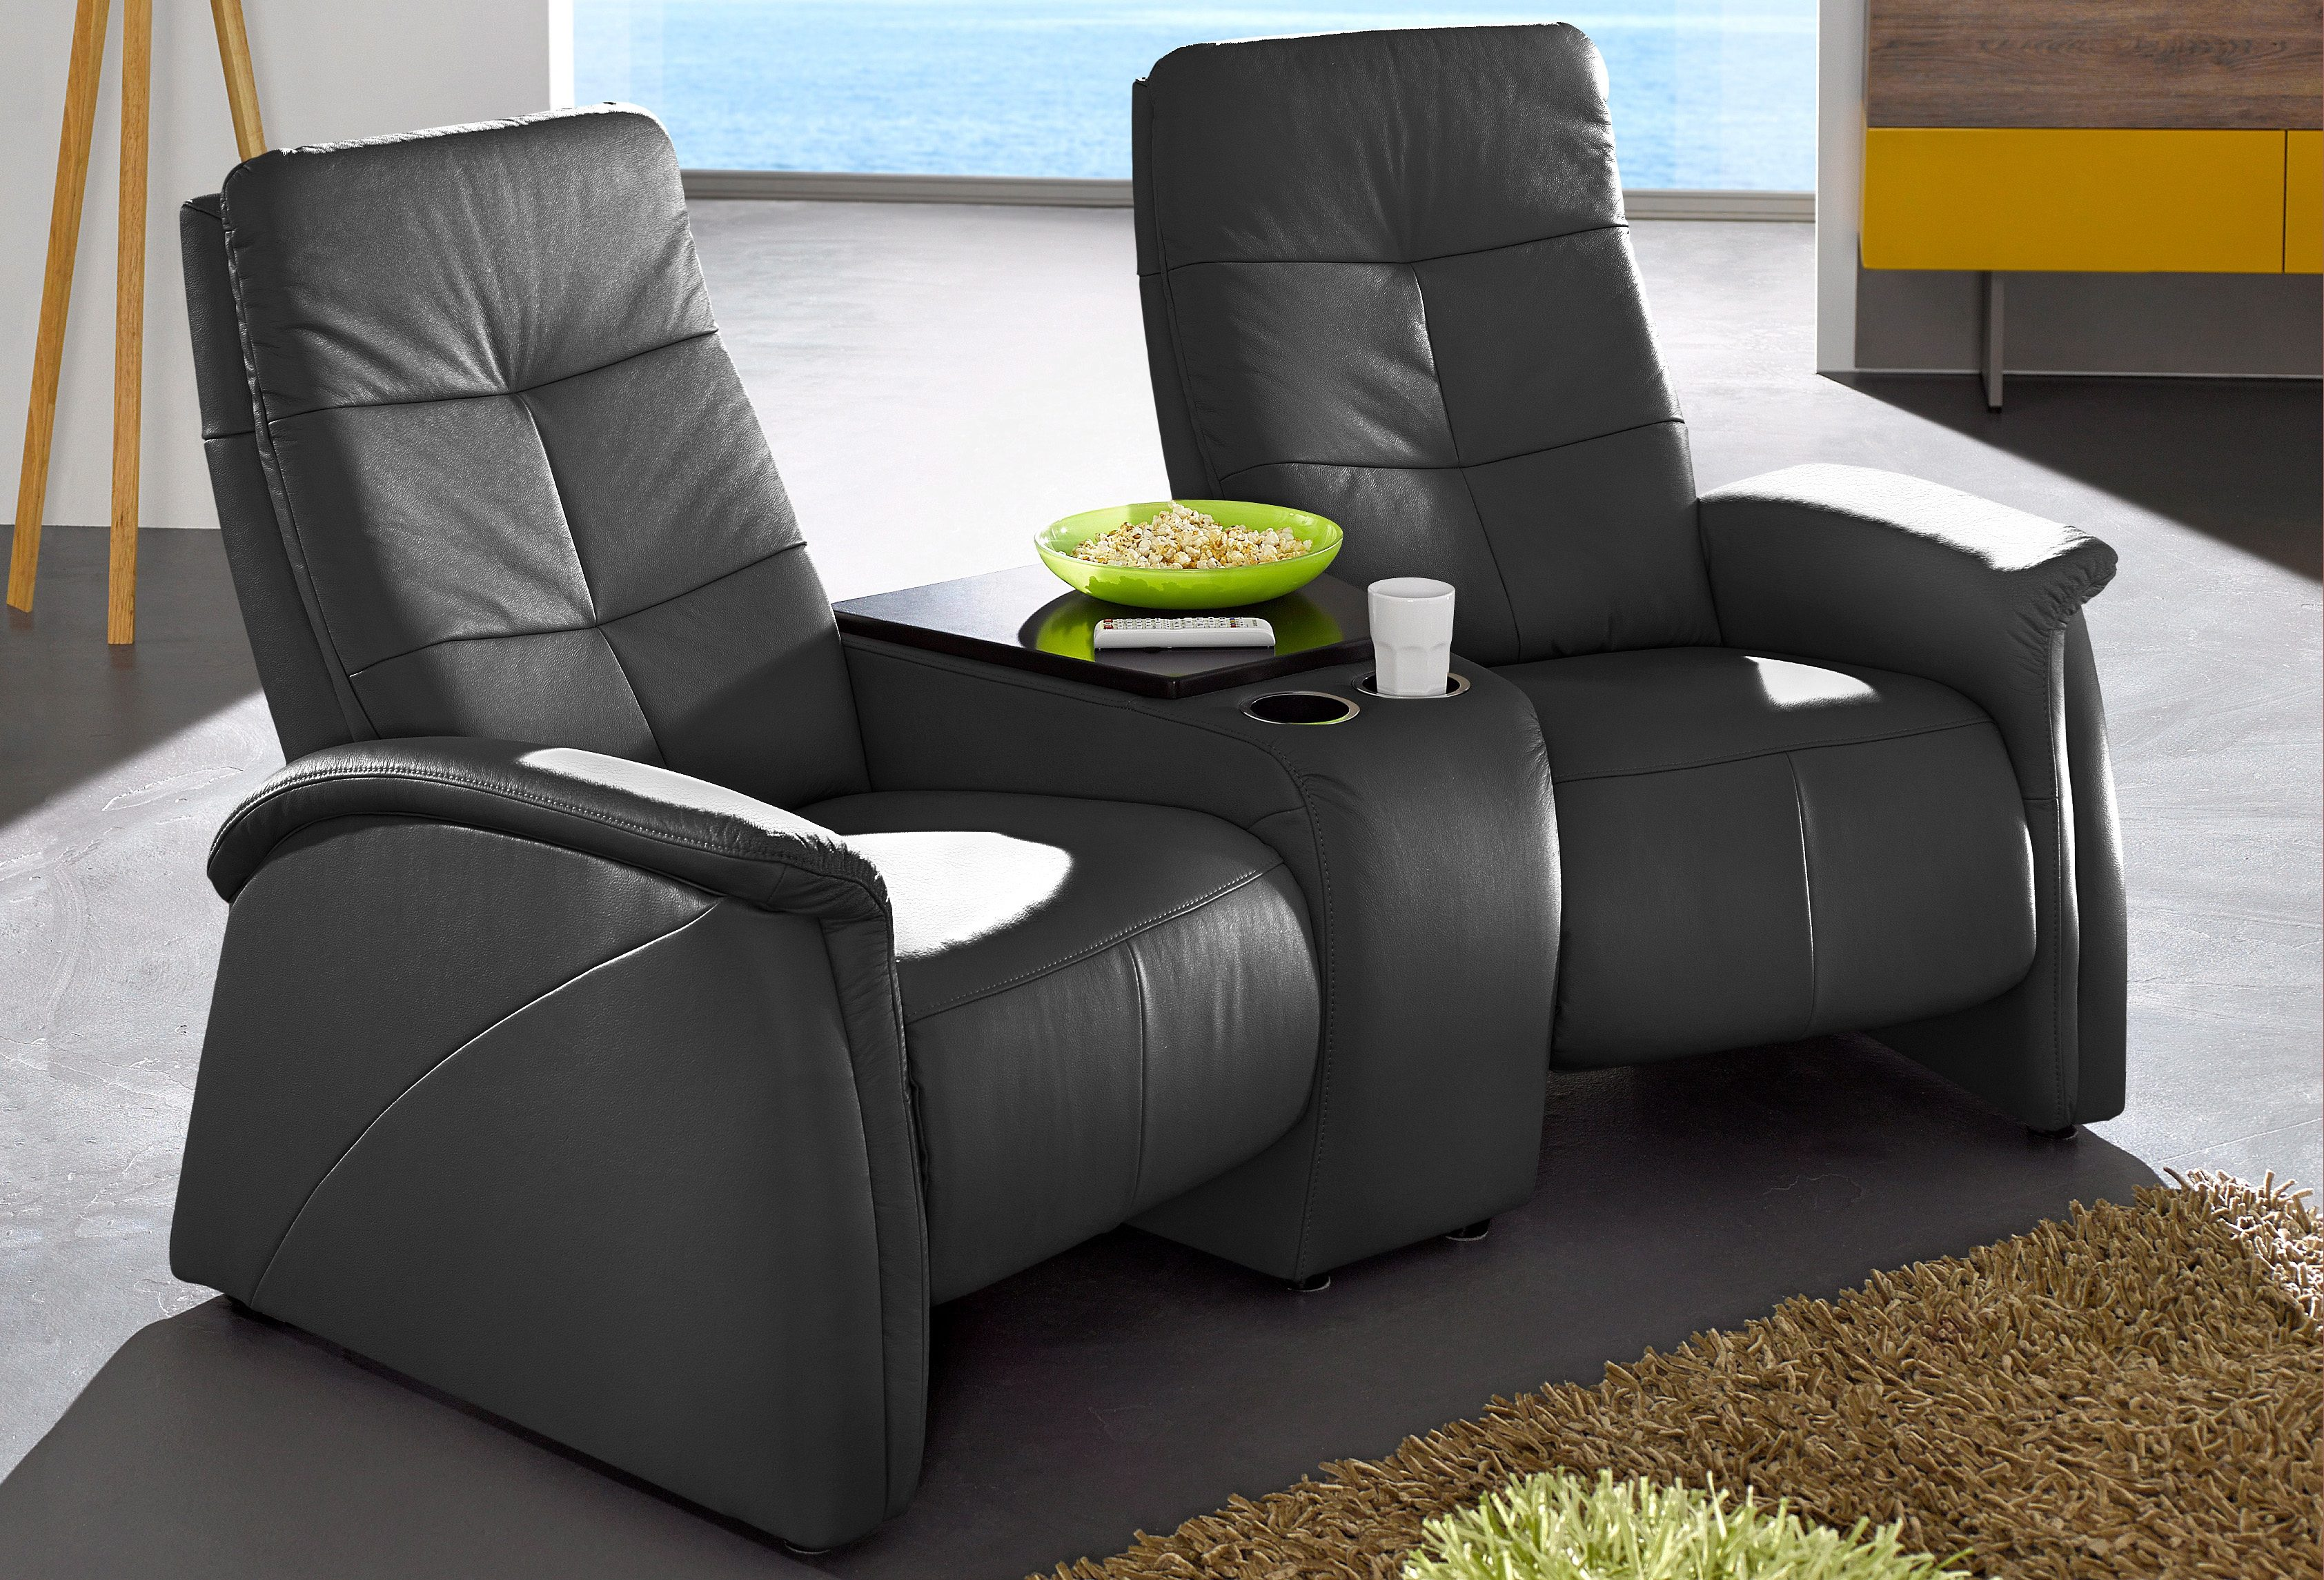 Kinosessel Wohnzimmer Exxpo - Sofa Fashion 2-sitzer, Mit Relaxfunktion